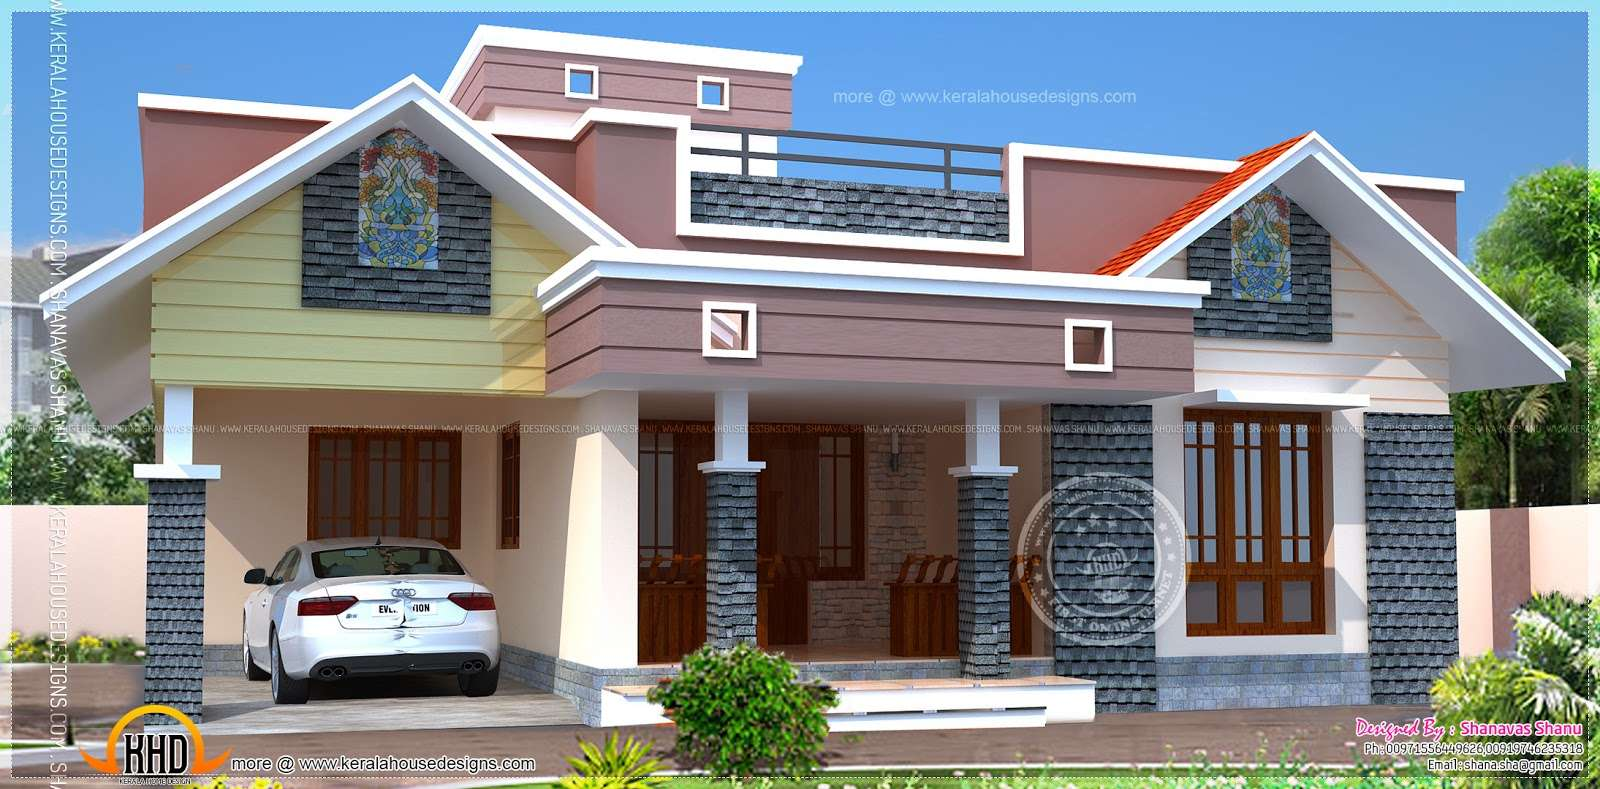 South Indian House Front Elevation Designs. Cool Front Elevation